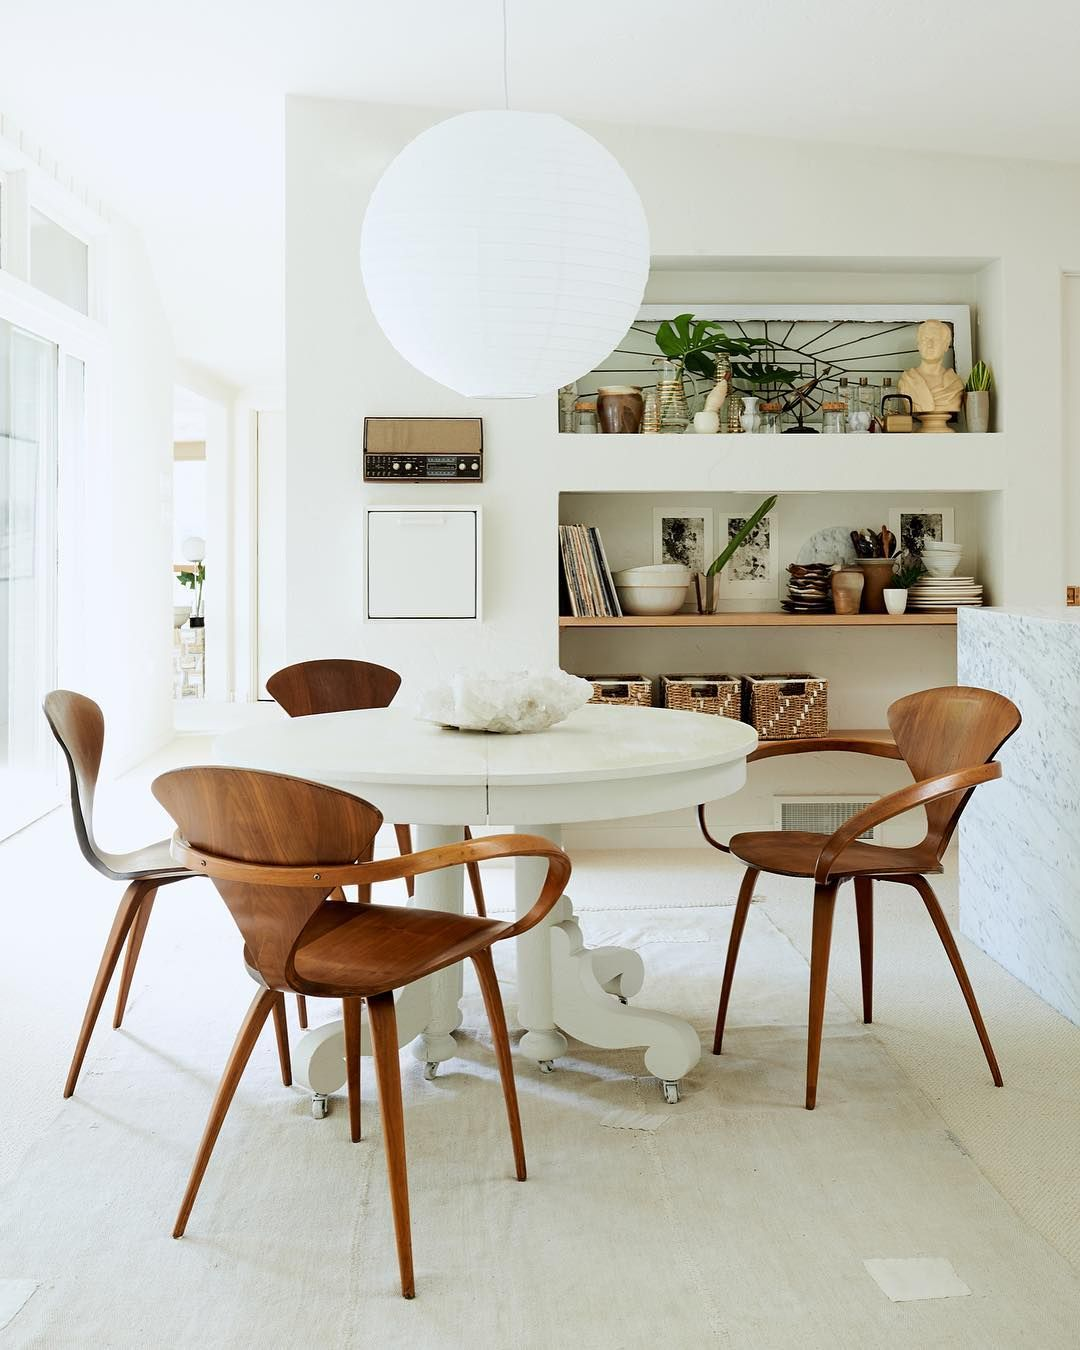 I kinda really love the mix of this table with these chairs where interior designers shop for affordable decor